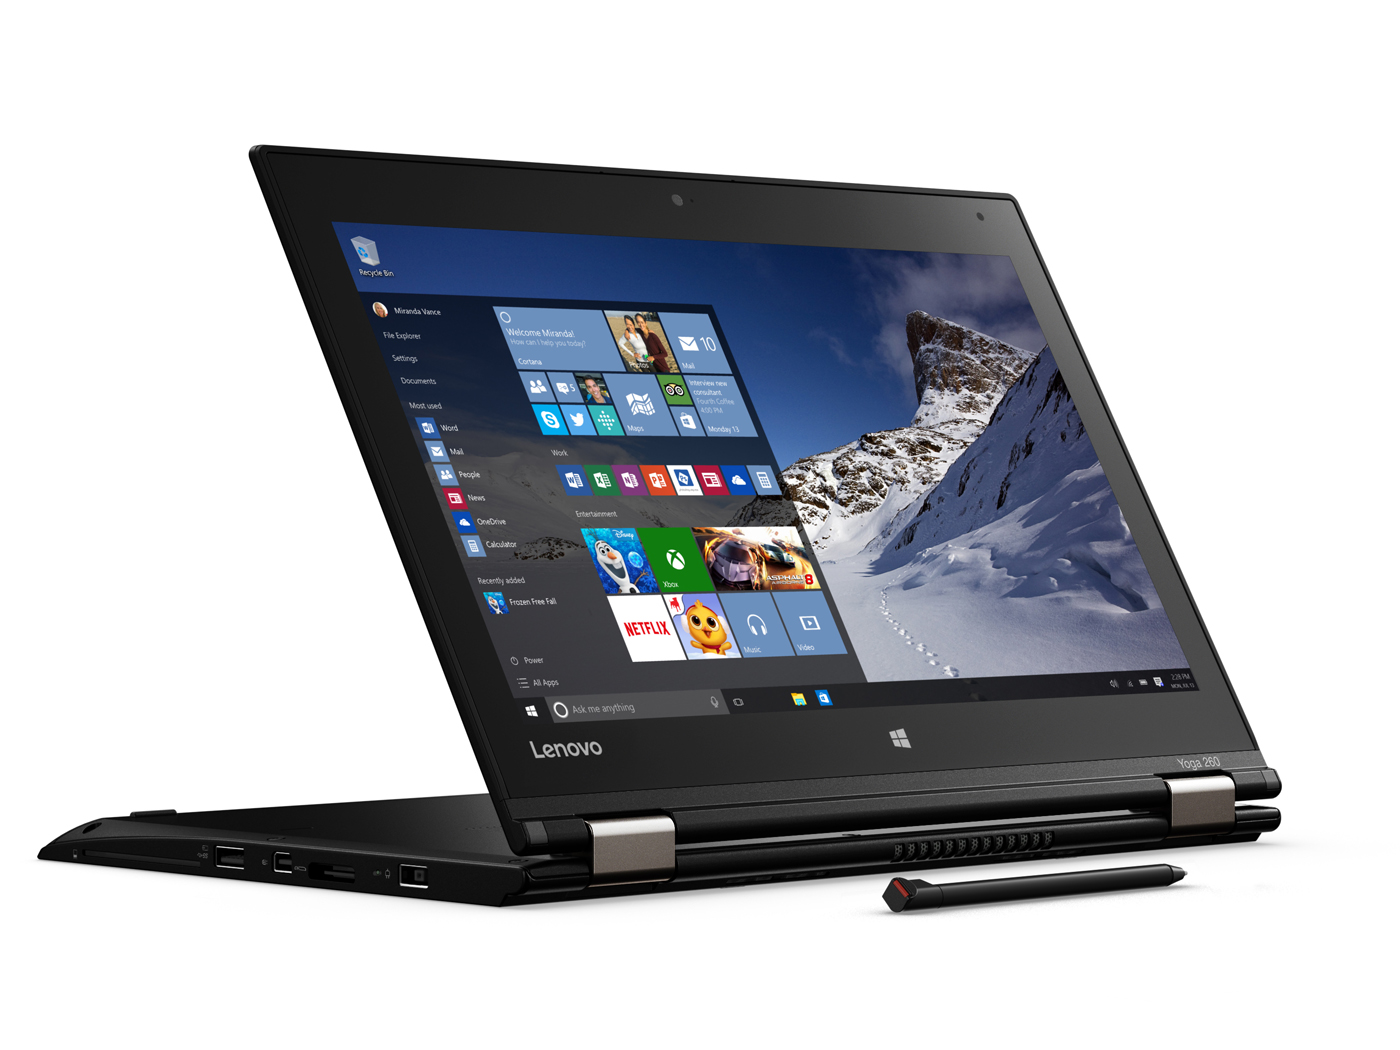 Lenovo Yoga 260 1400x1050 Wallpaper Teahub Io